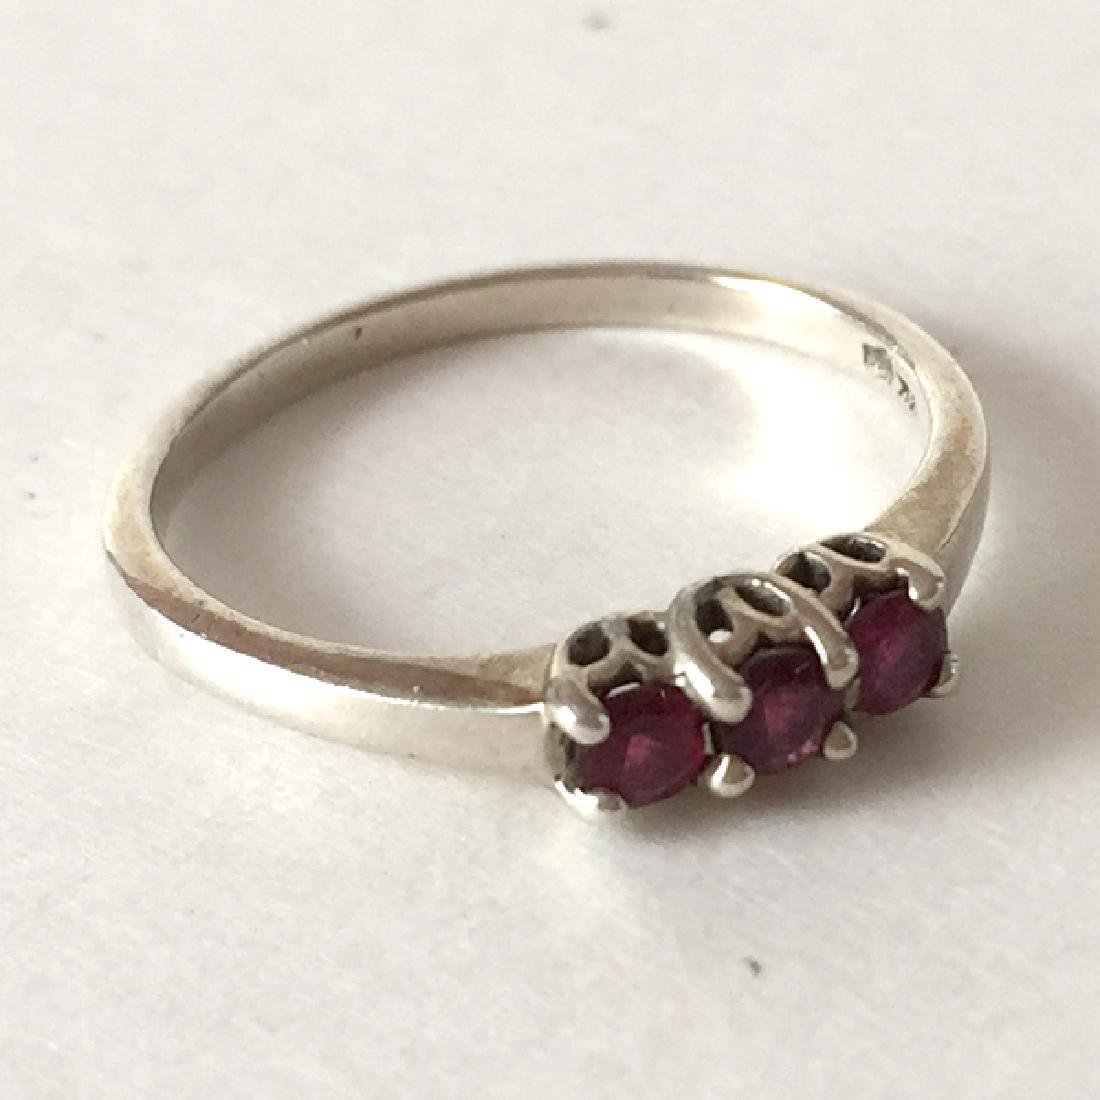 Sterling silver 3 round faceted red rubies ring, size - 4